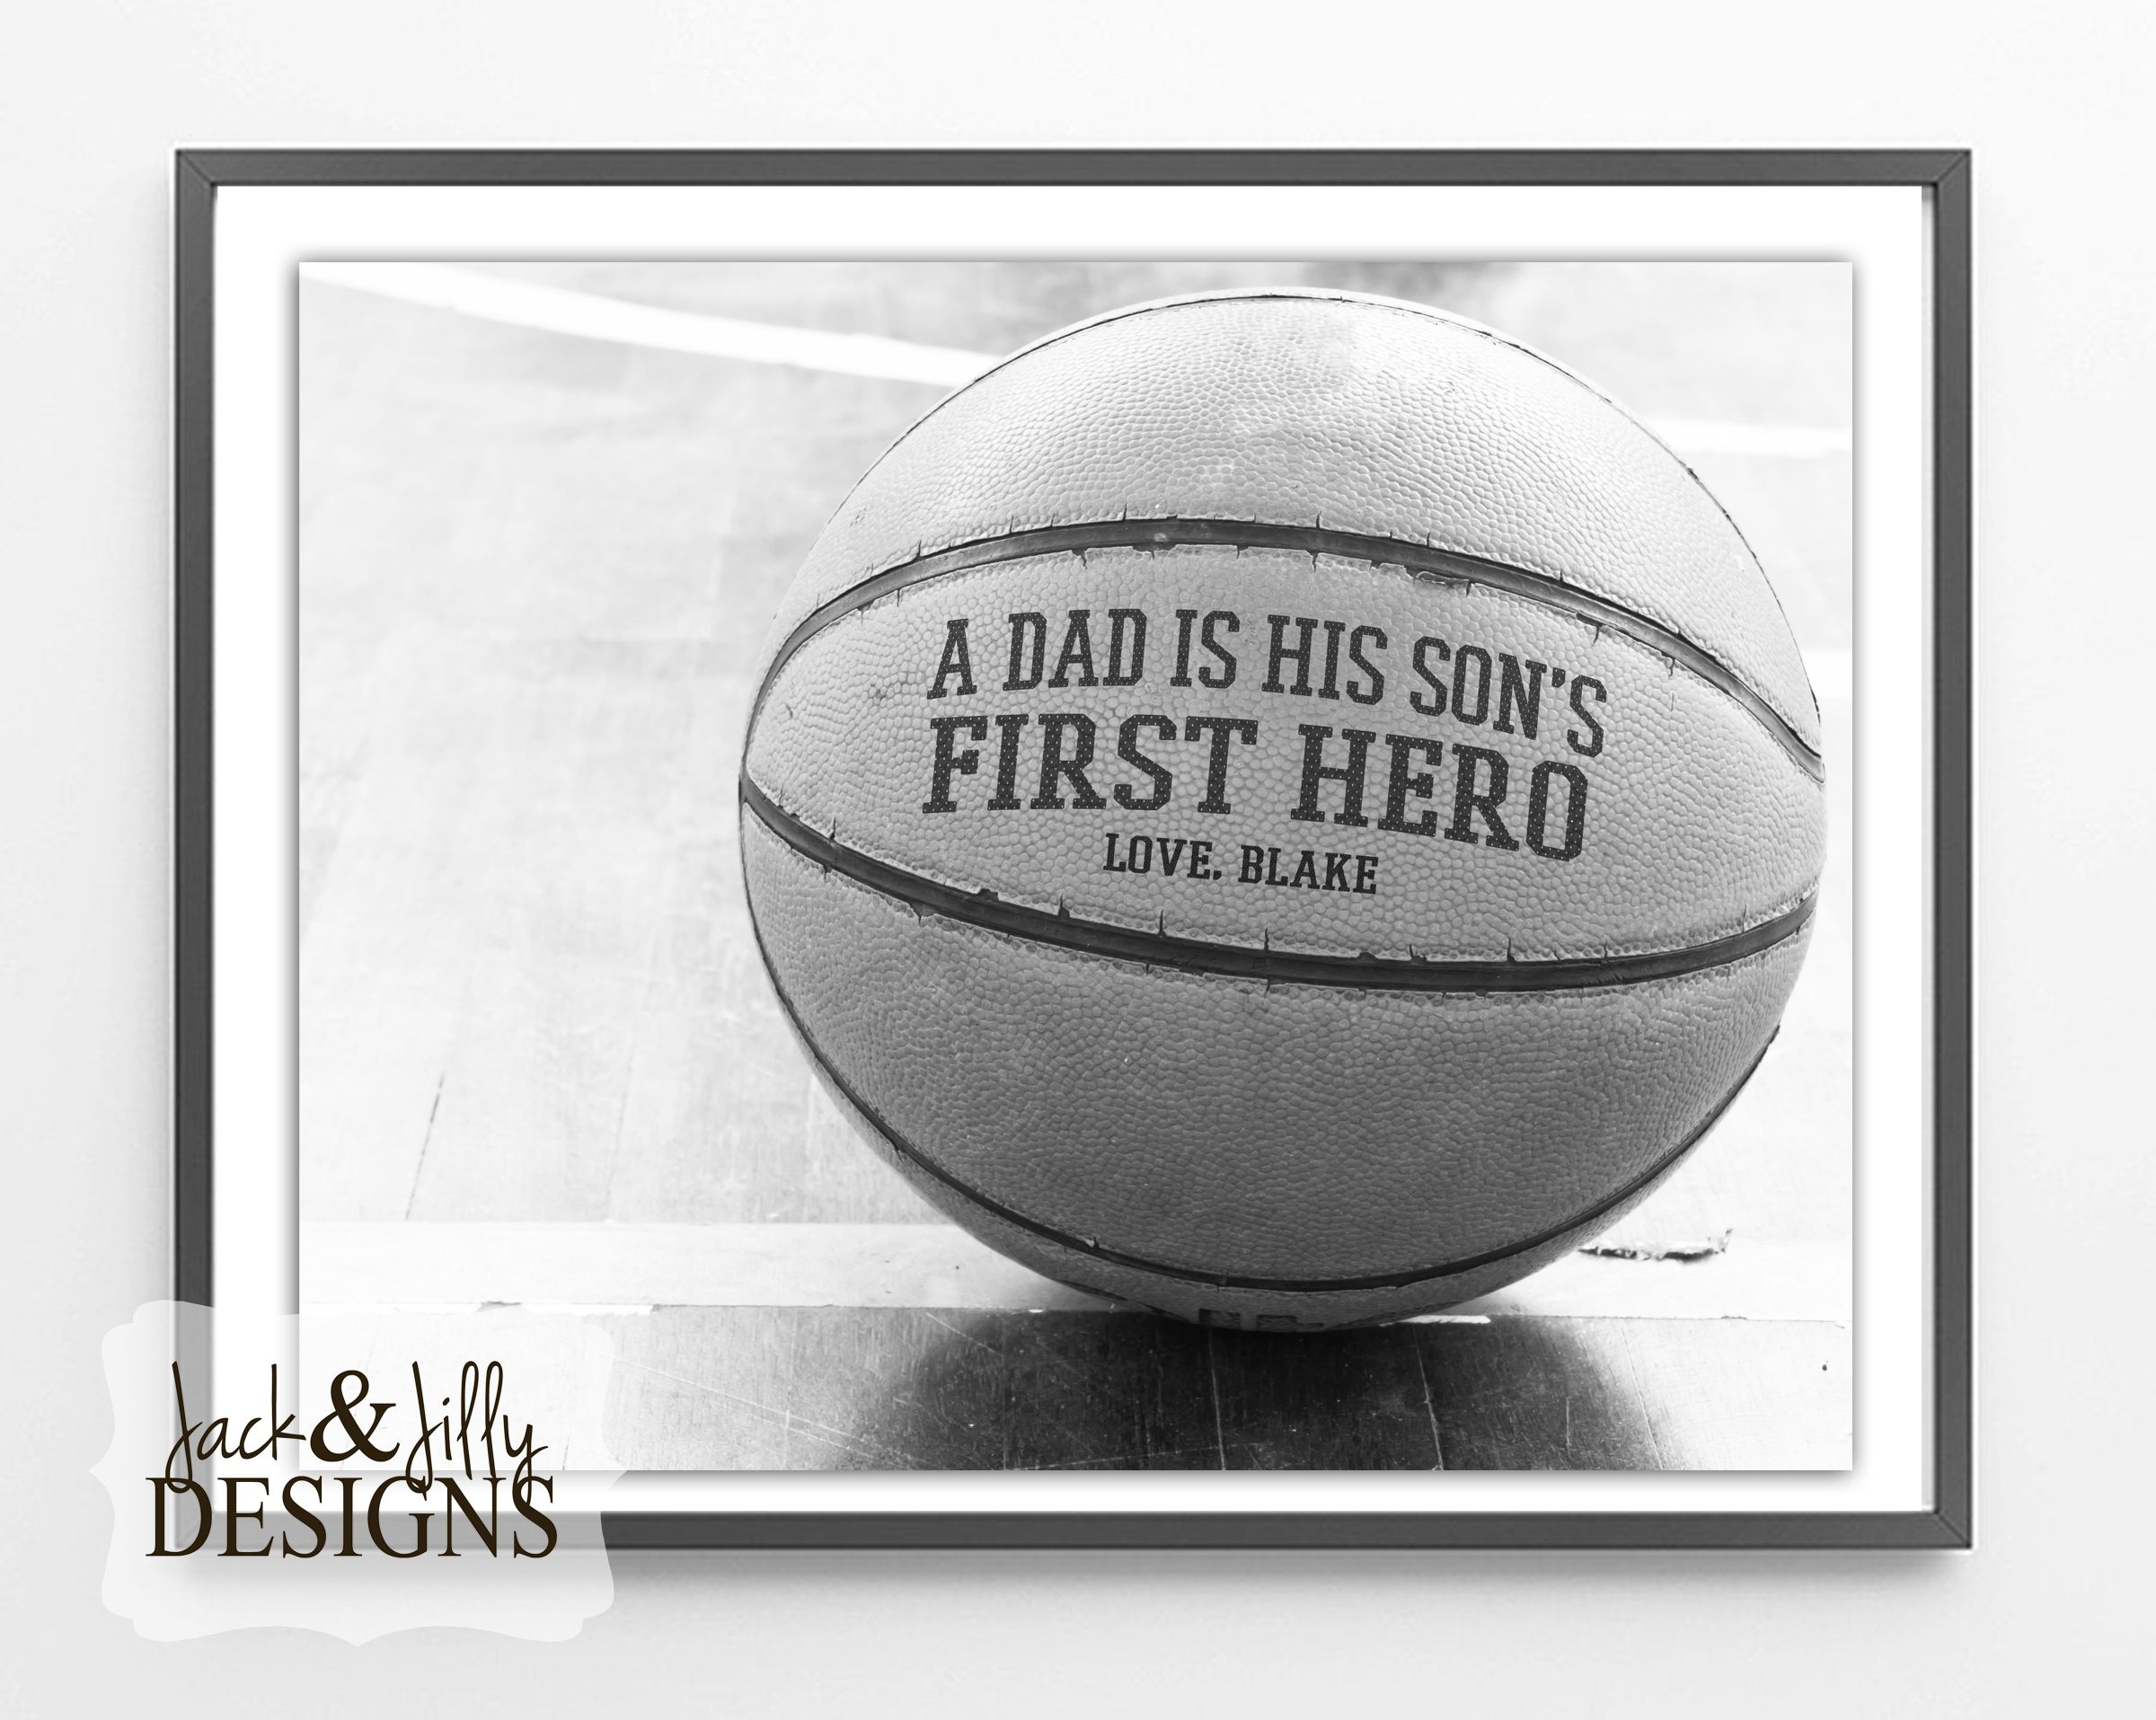 Fathers Day Gift Idea  Personalized Basketball  From Jack